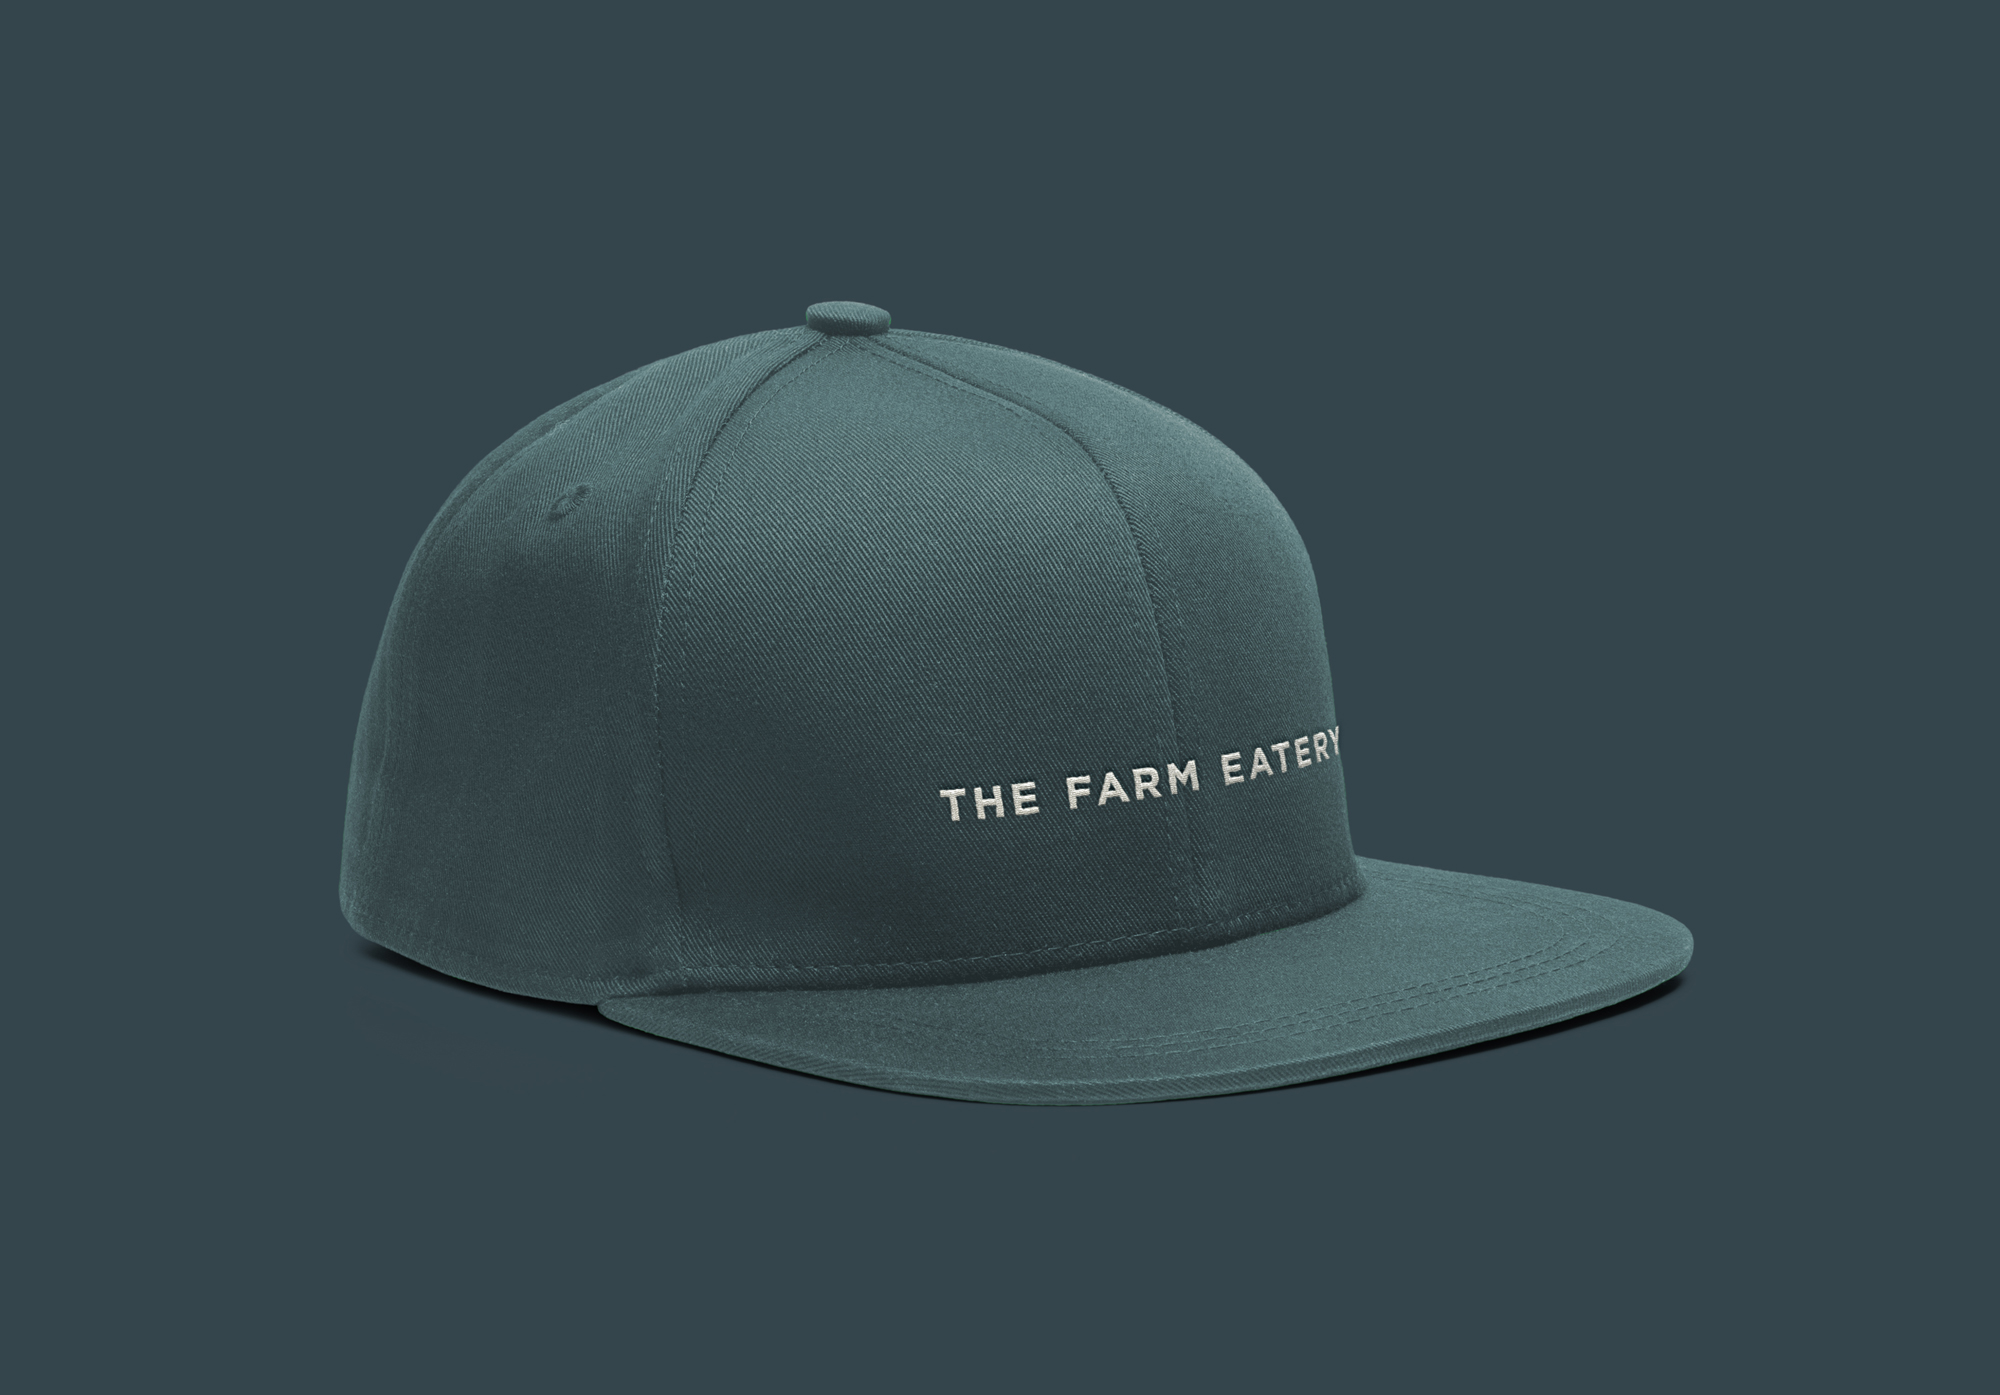 The Farm Eatery Snapback Cap